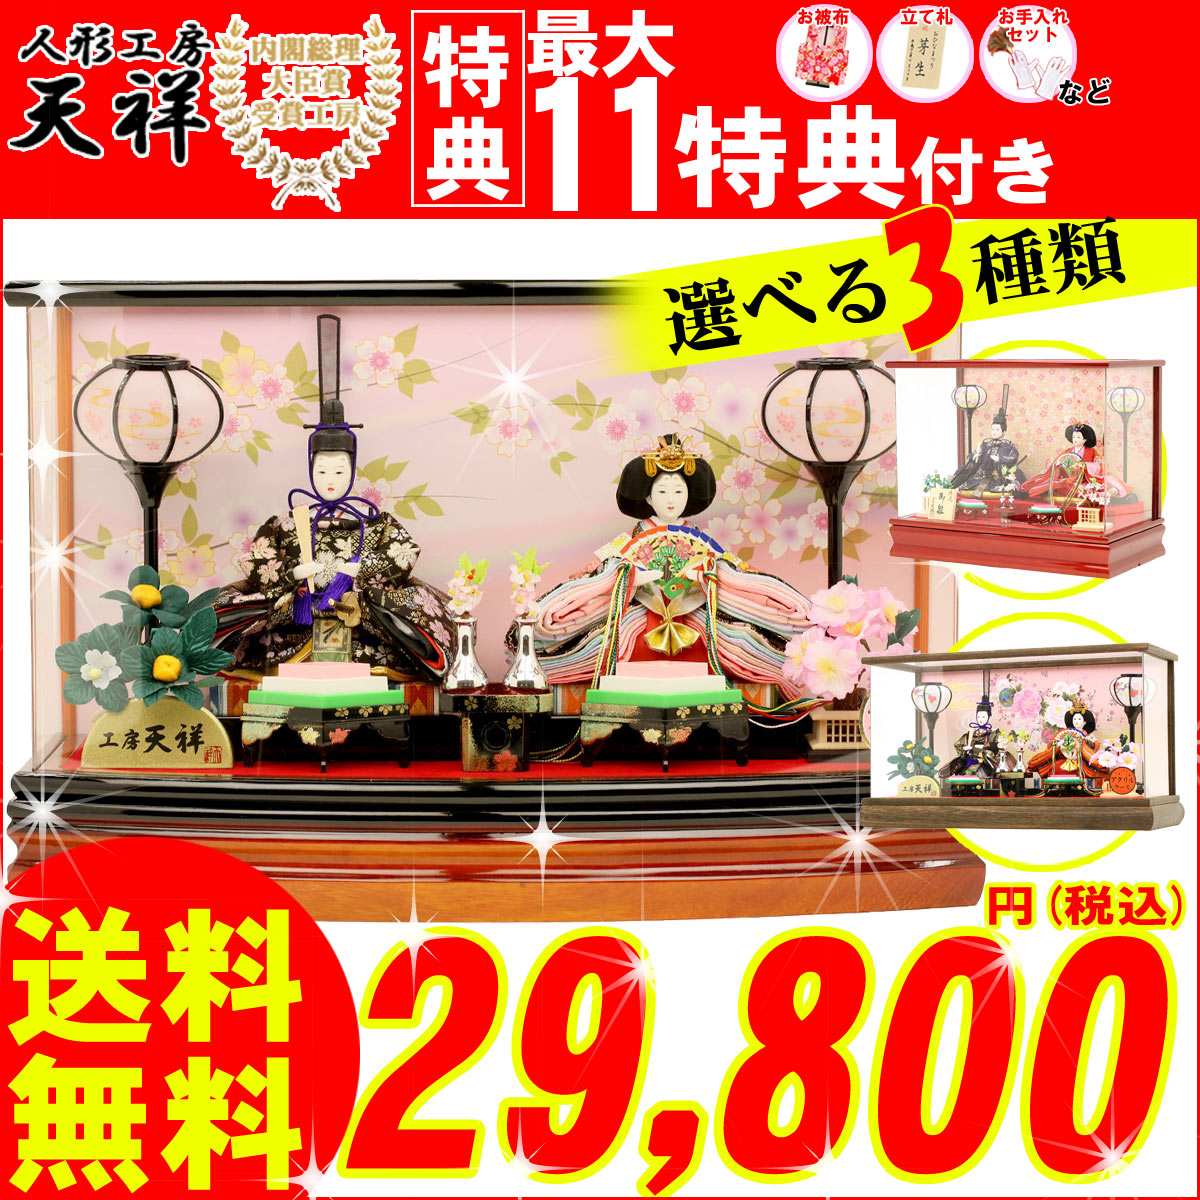 Hina dolls compact case ornament case Imperial Prince ornament Prince acrylic case name tags for dolls Hinamatsuri Juni chicks limited original case ornament 333 Yen coupon distribution in P27Mar15